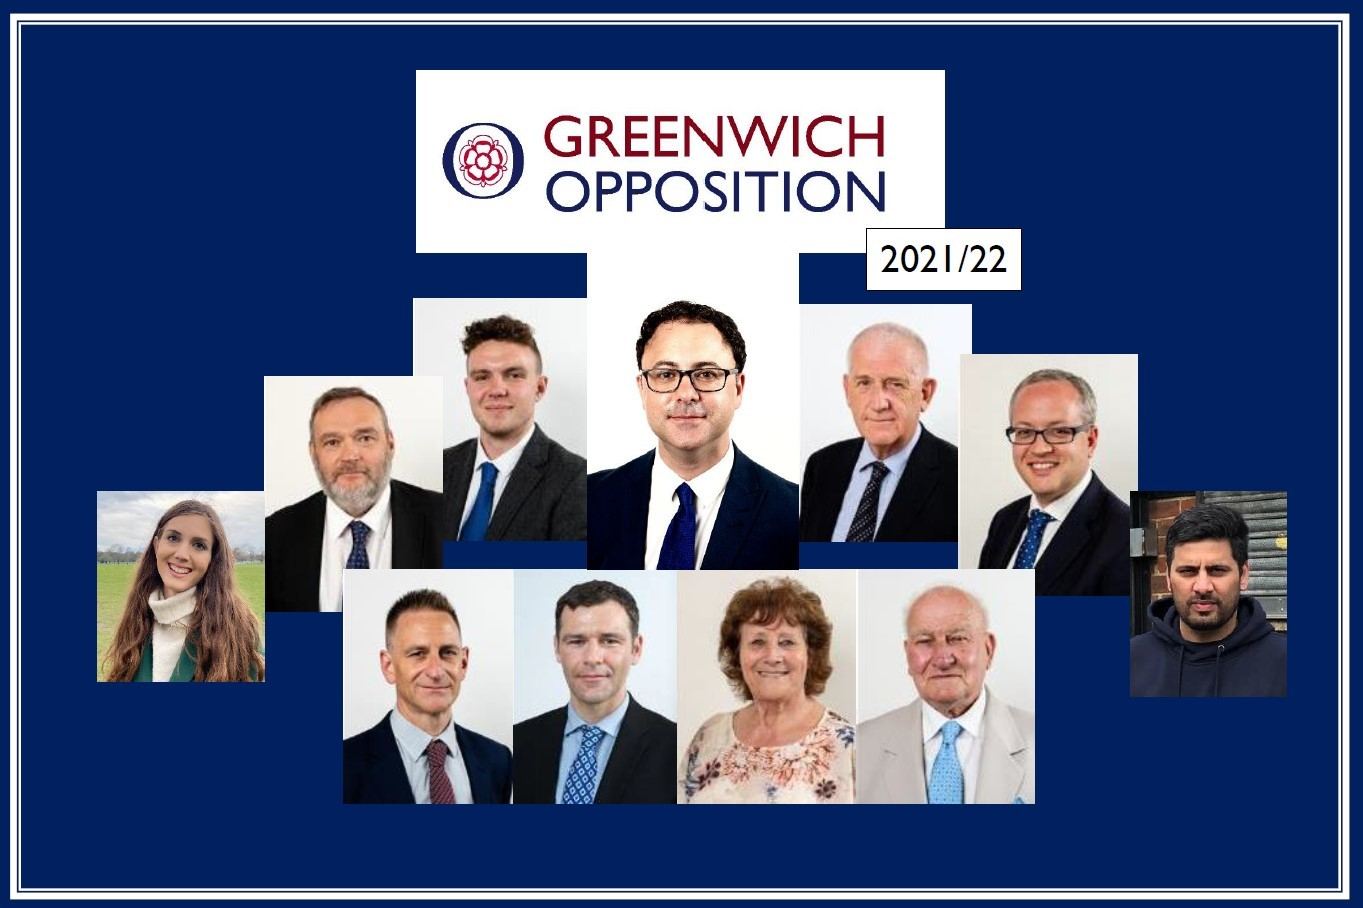 The full Opposition to Greenwich Council